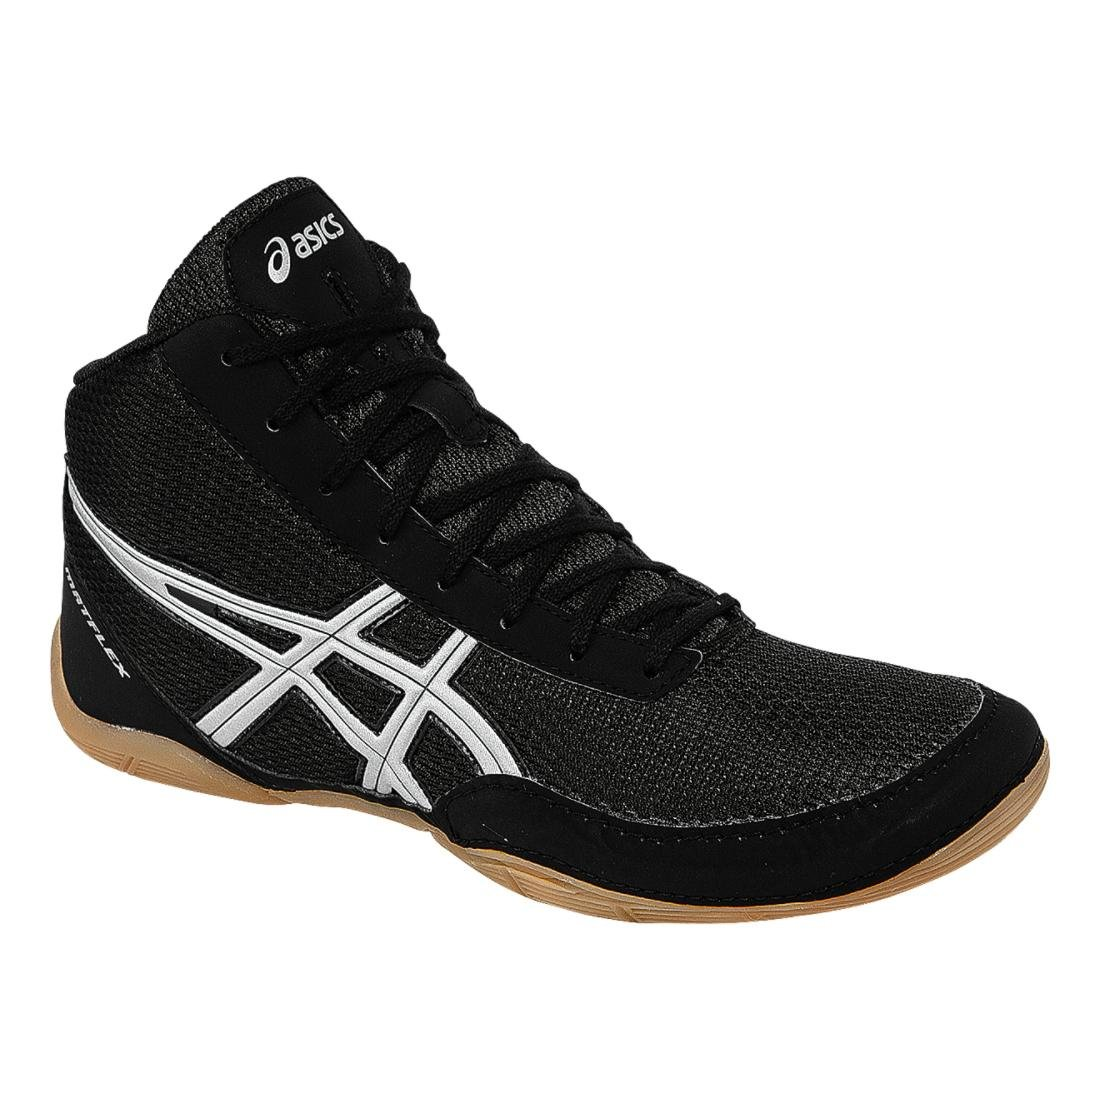 ASICS Men's Matflex 5 Wrestling Shoe, Black/Silver, 7 M US